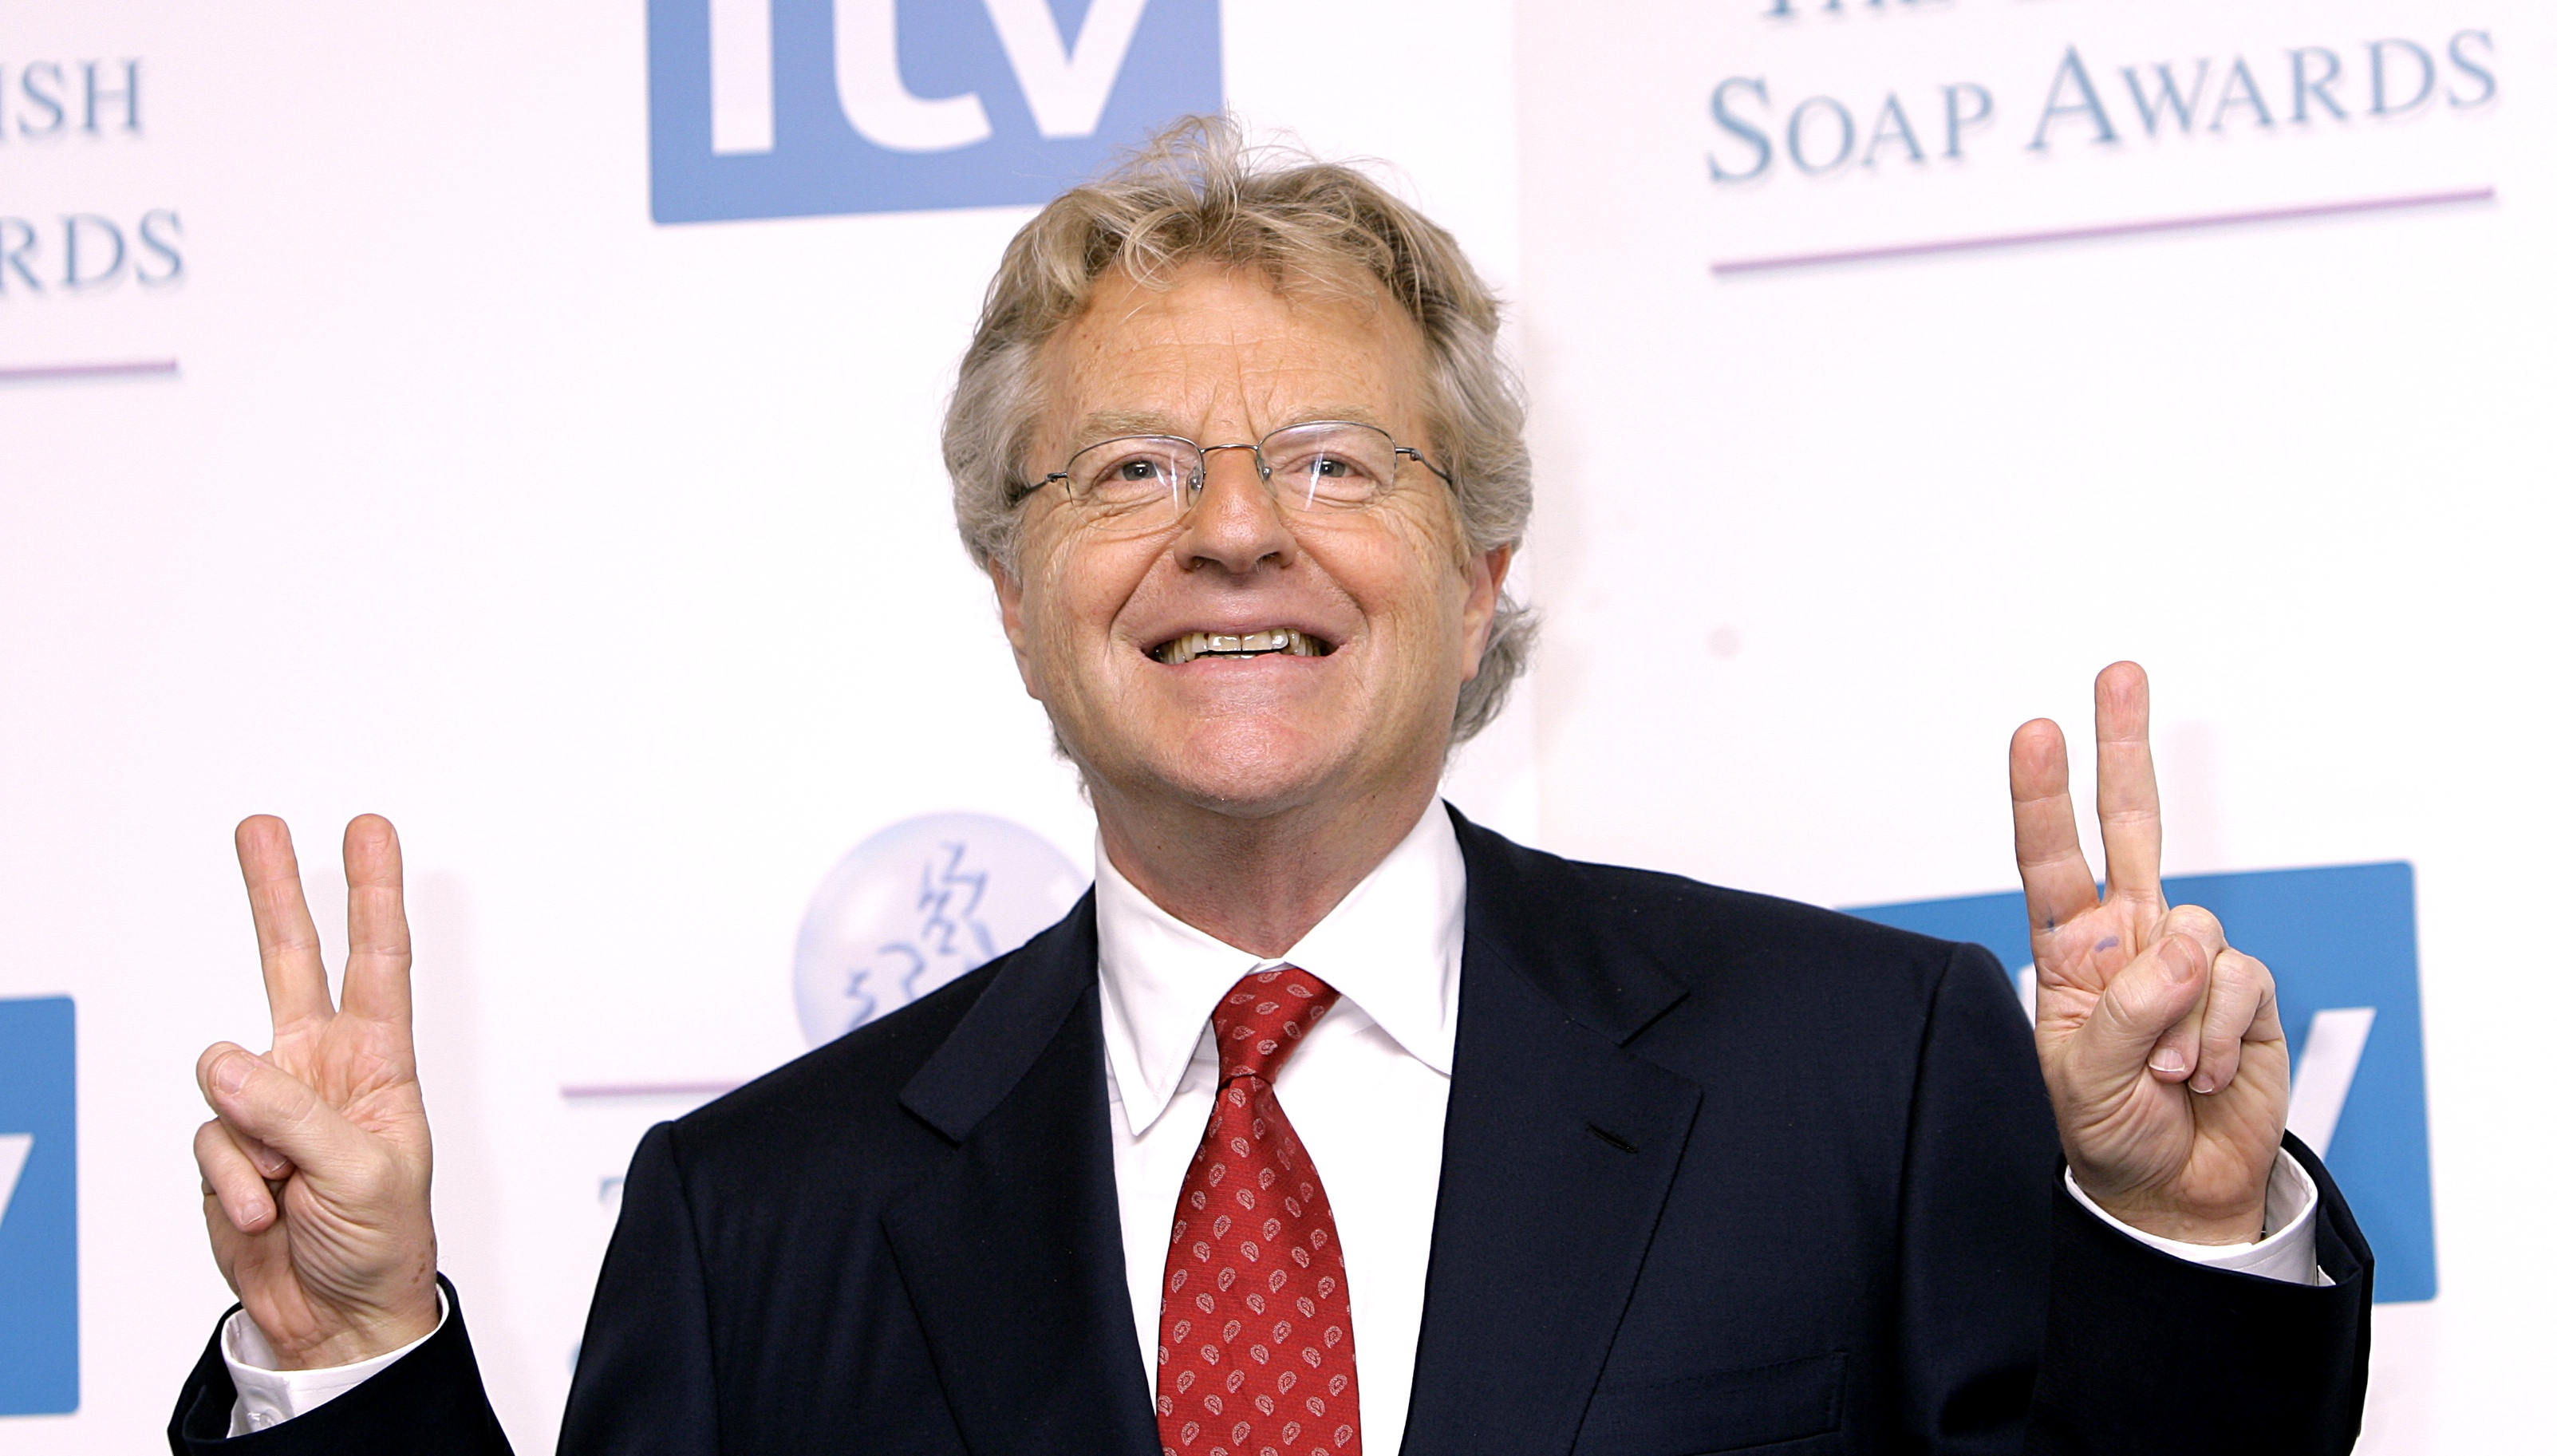 The British Soap Awards 2007 - Press Room - London